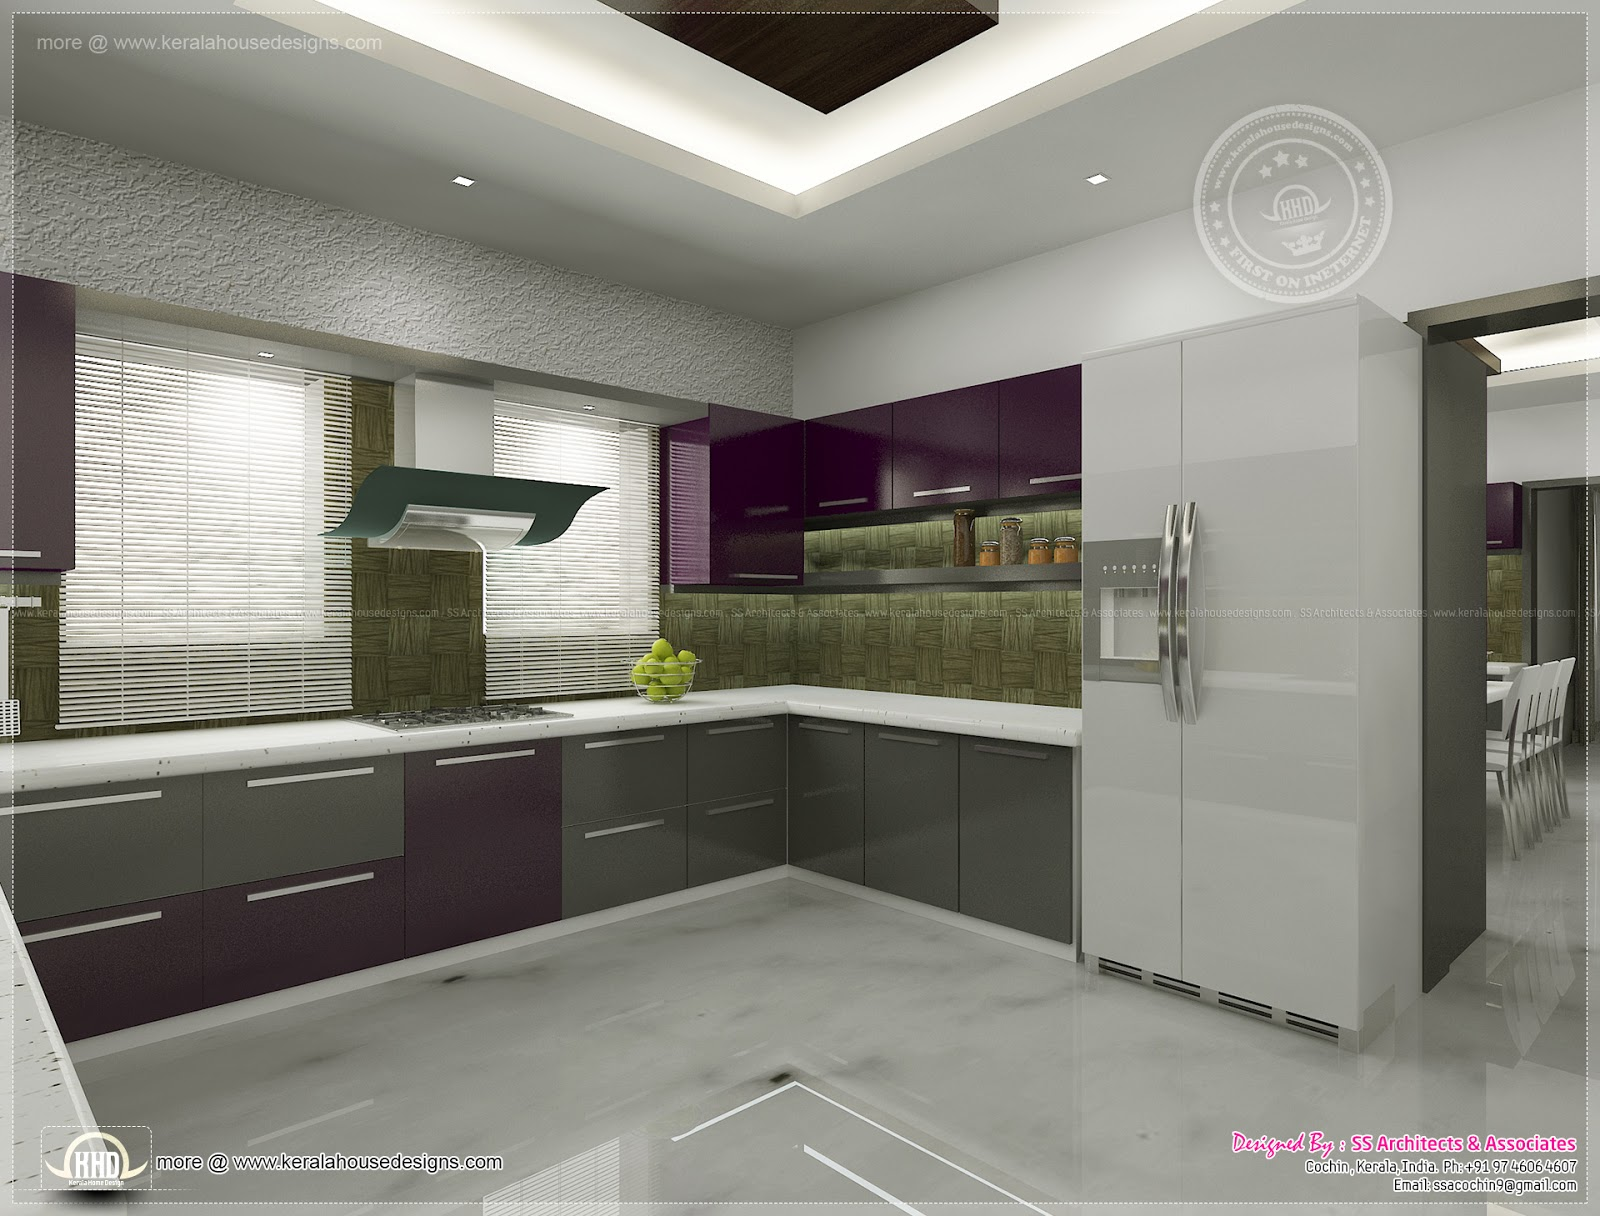 kitchen interior views by ss architects cochin kerala home design and floor plans. Black Bedroom Furniture Sets. Home Design Ideas